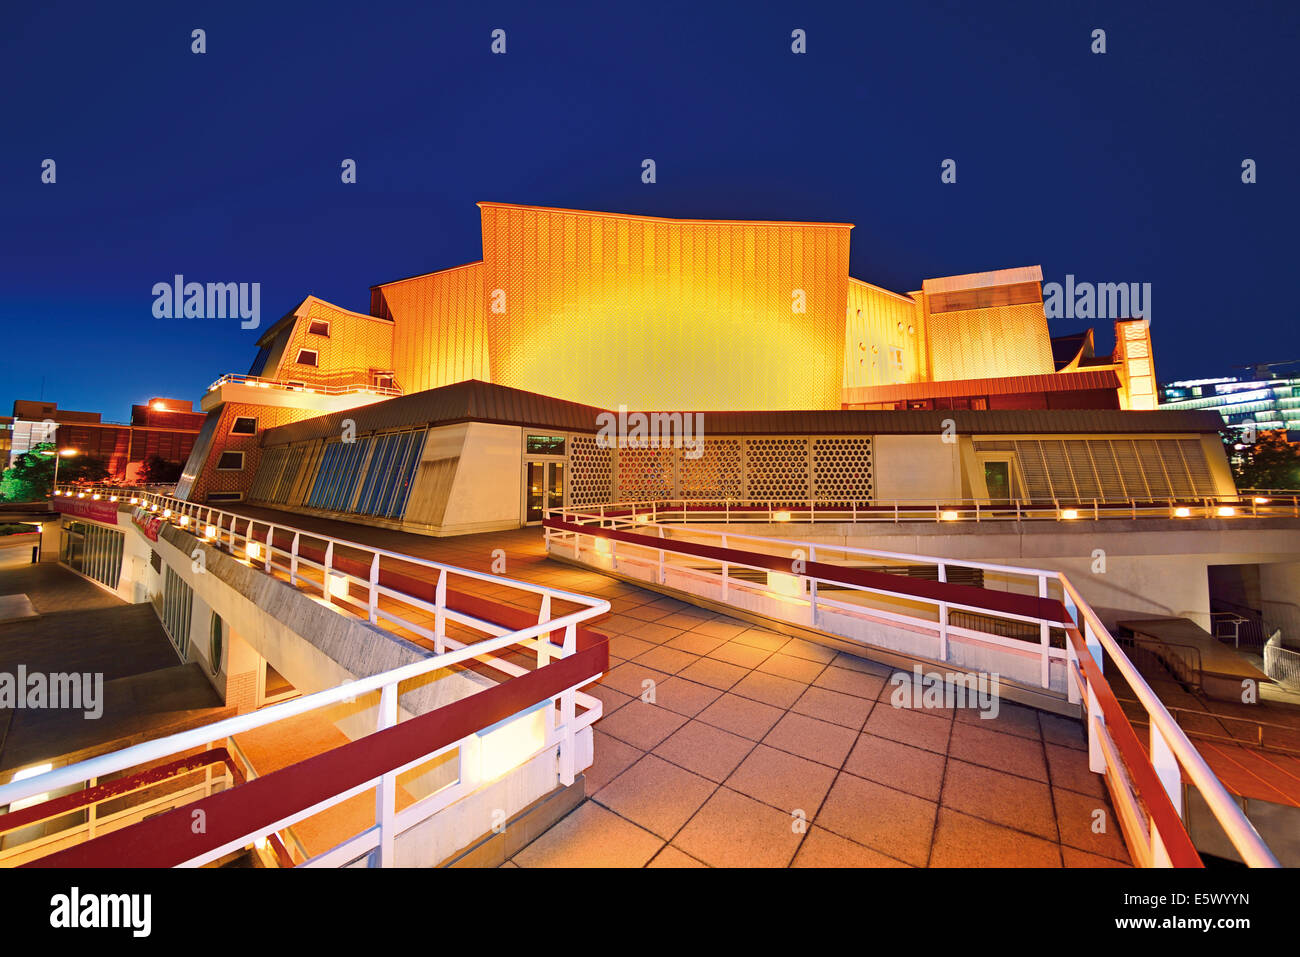 Germany, Berlin: Nocturnal view of the Philharmonic Orchestra Hall - Stock Image